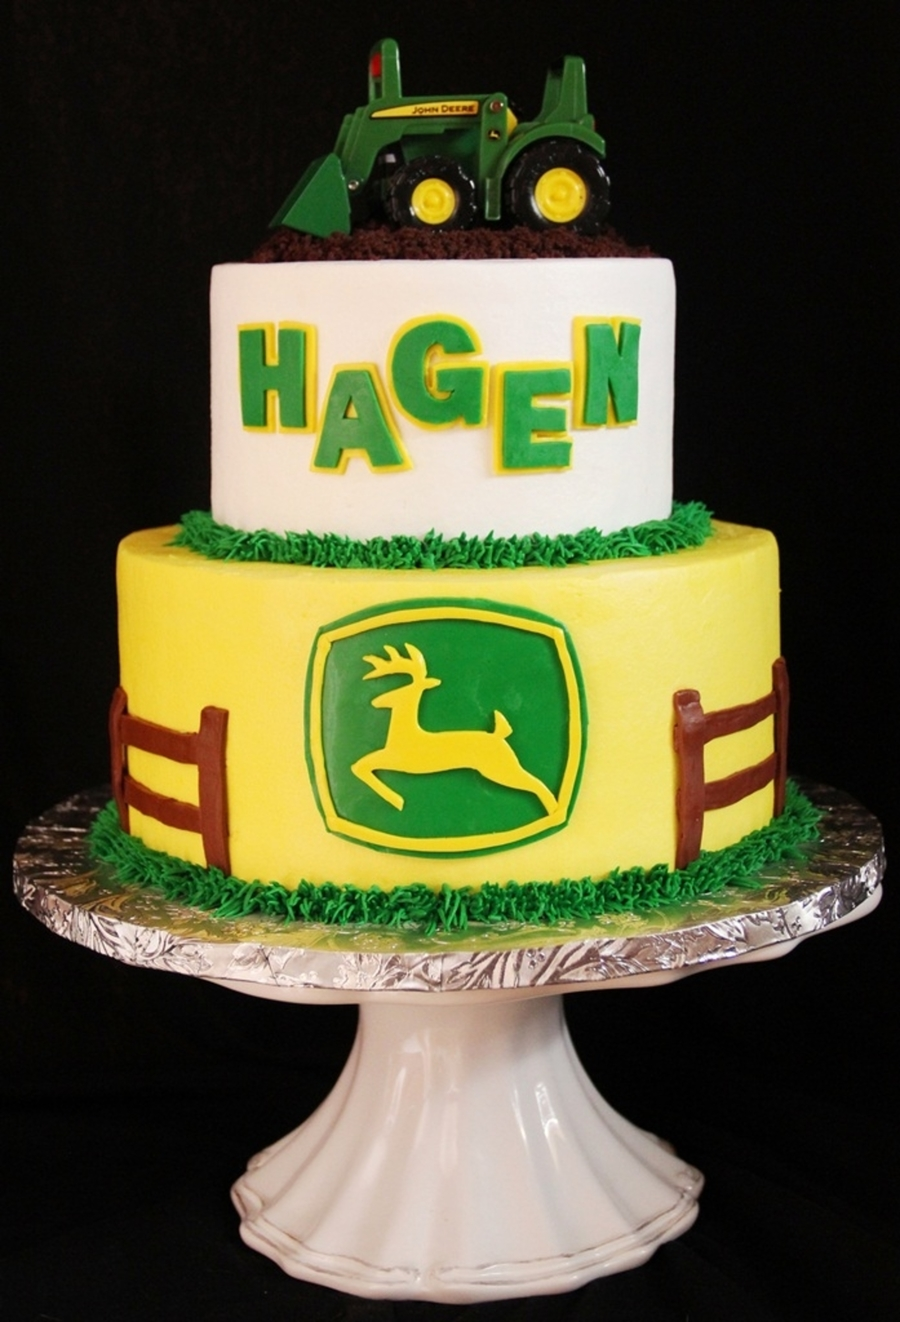 Hagen's 1St on Cake Central